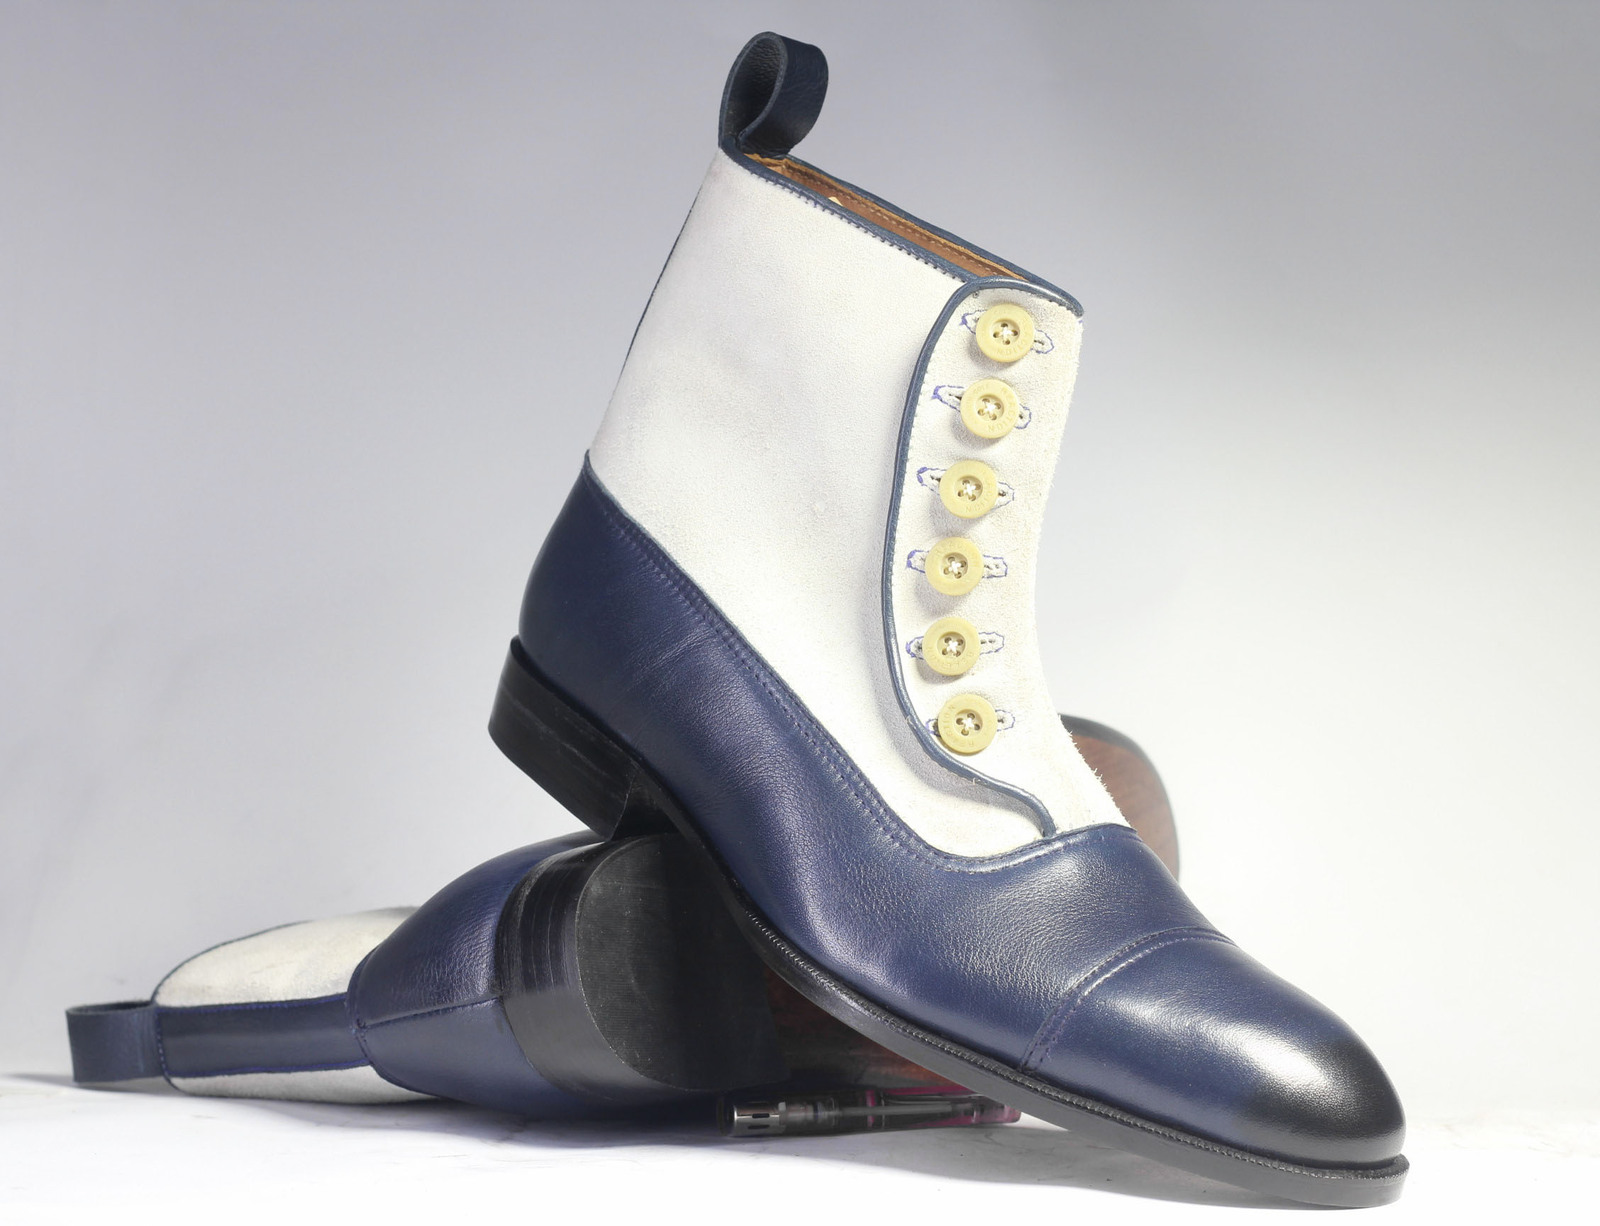 Handmade Men's White and Blue High Ankle Two Tone Buttons Dress/Formal Leather &